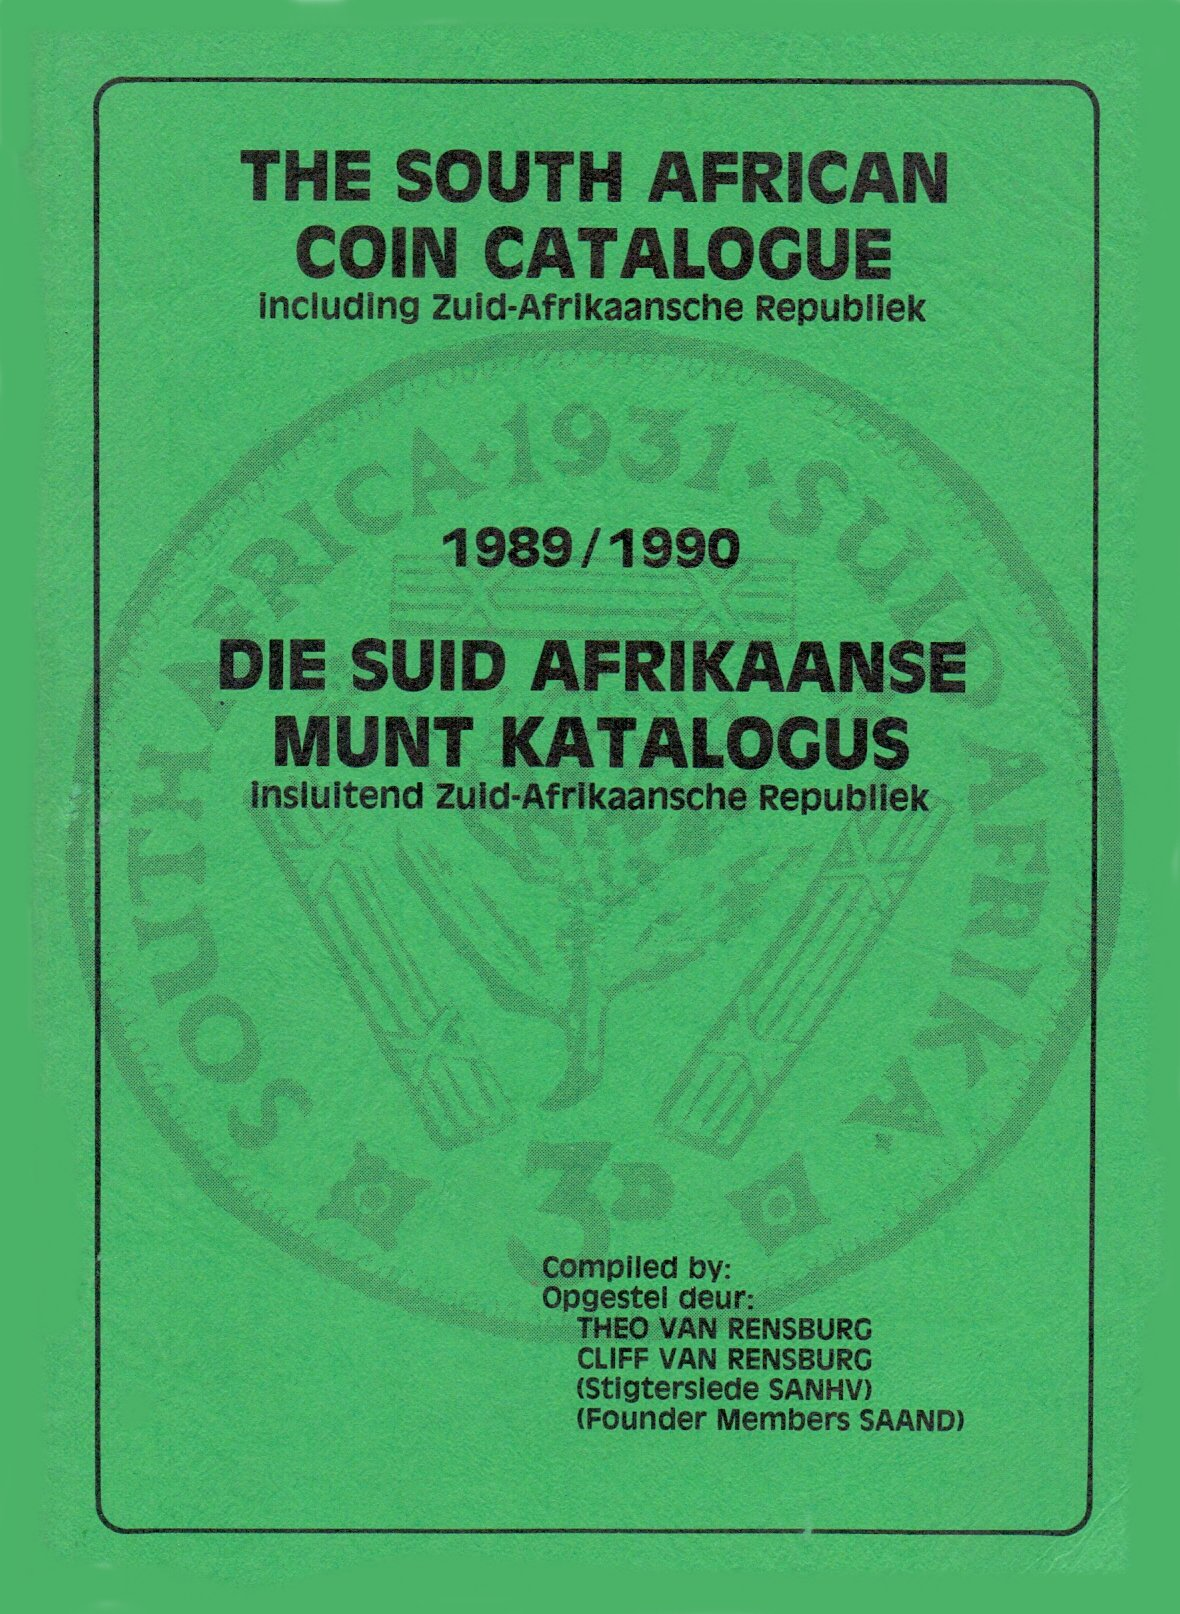 Randburg Coin Catalogue 1989 to 1990